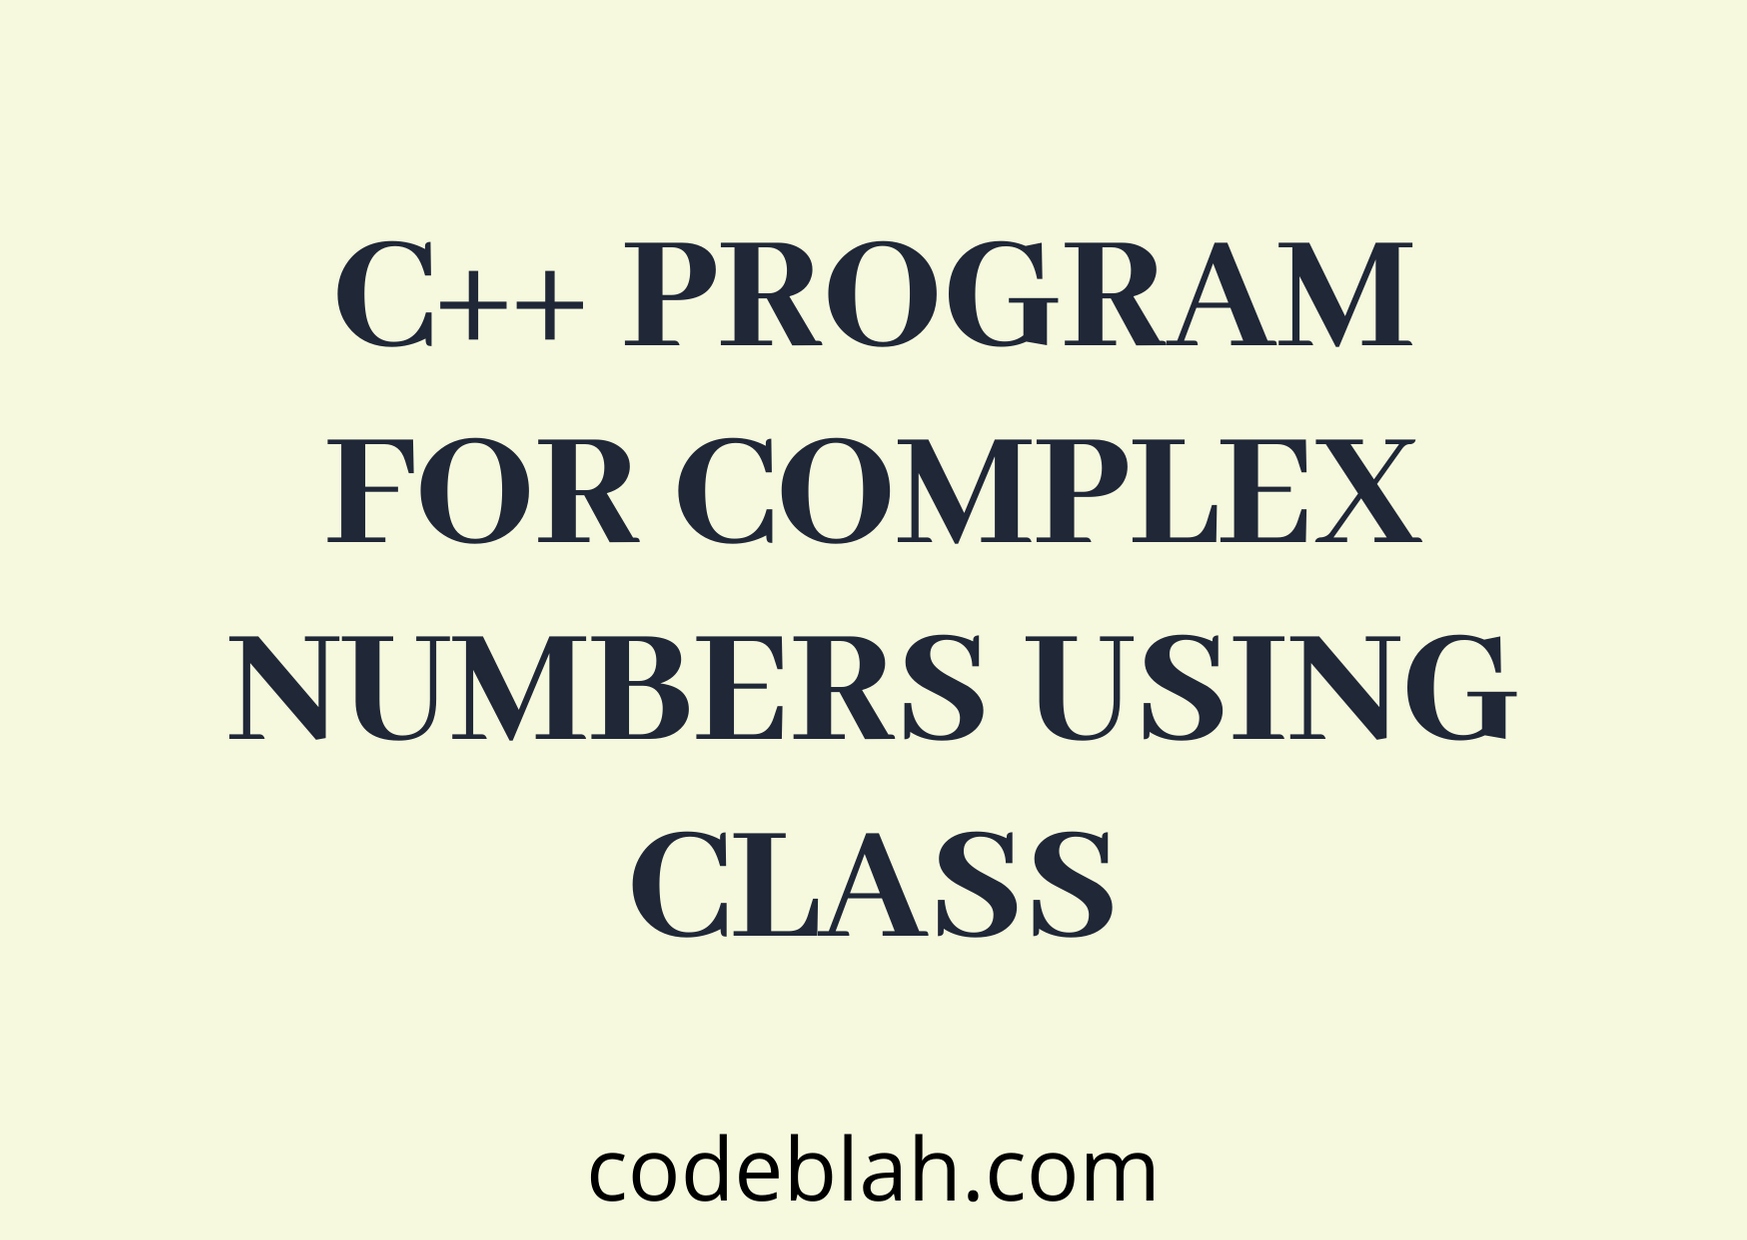 C++ Program to Implement Complex Numbers using Classes